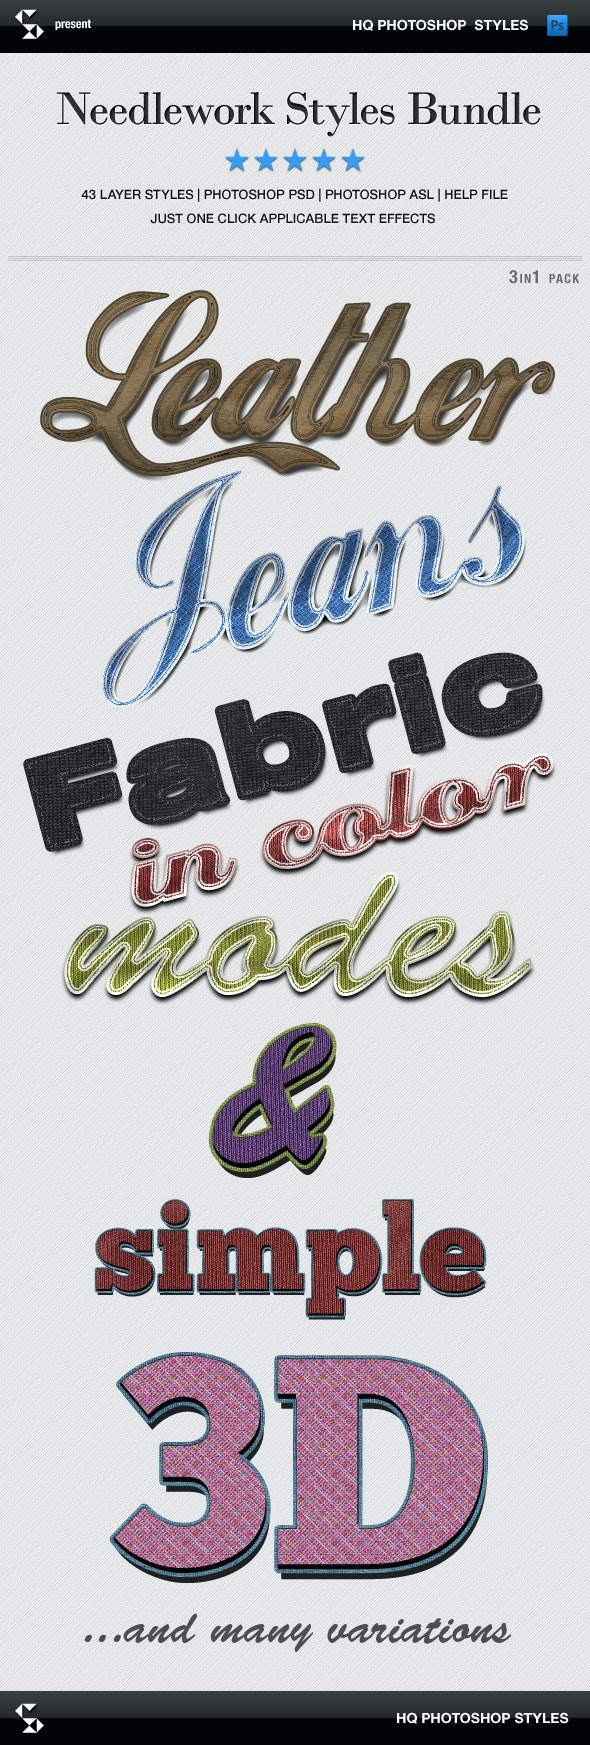 Needlework Styles Bundle - Denim, Leather, Fabric - Text Effects Styles